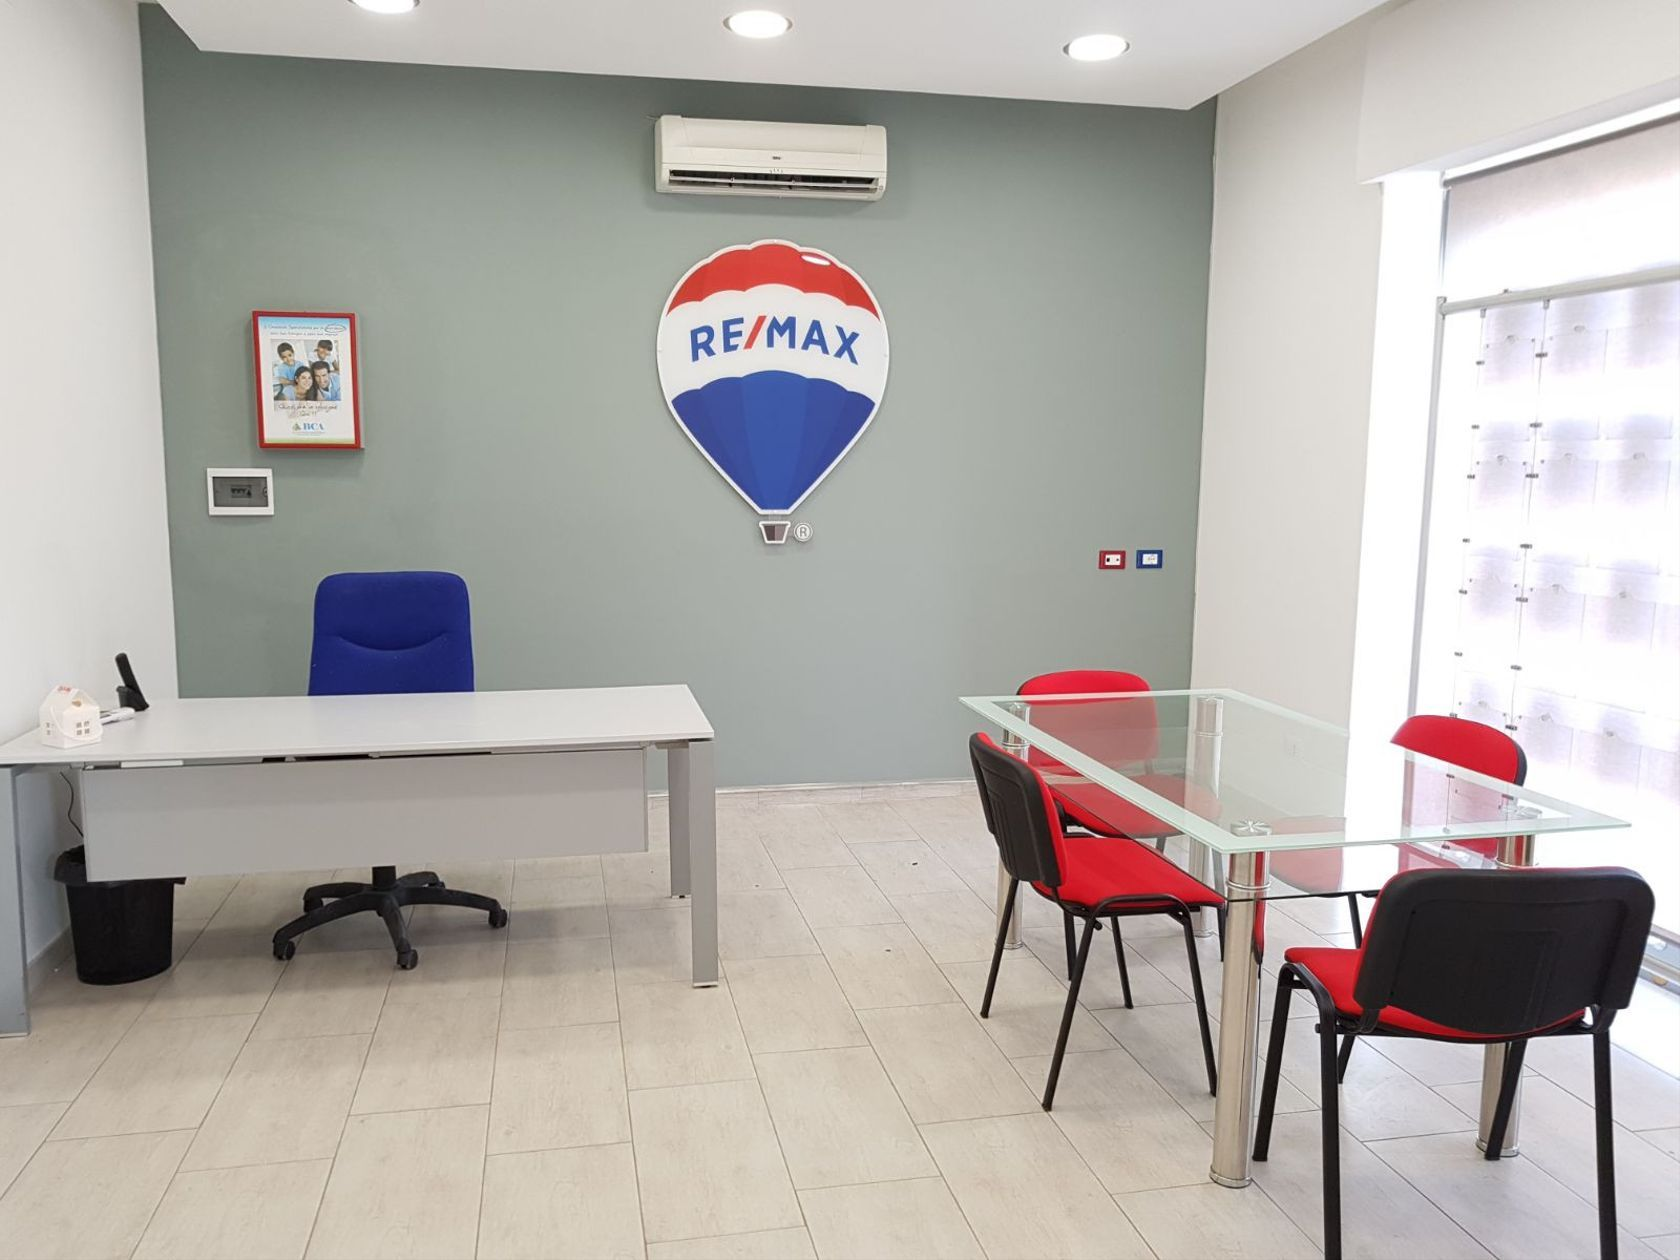 RE/MAX Arts Ardea